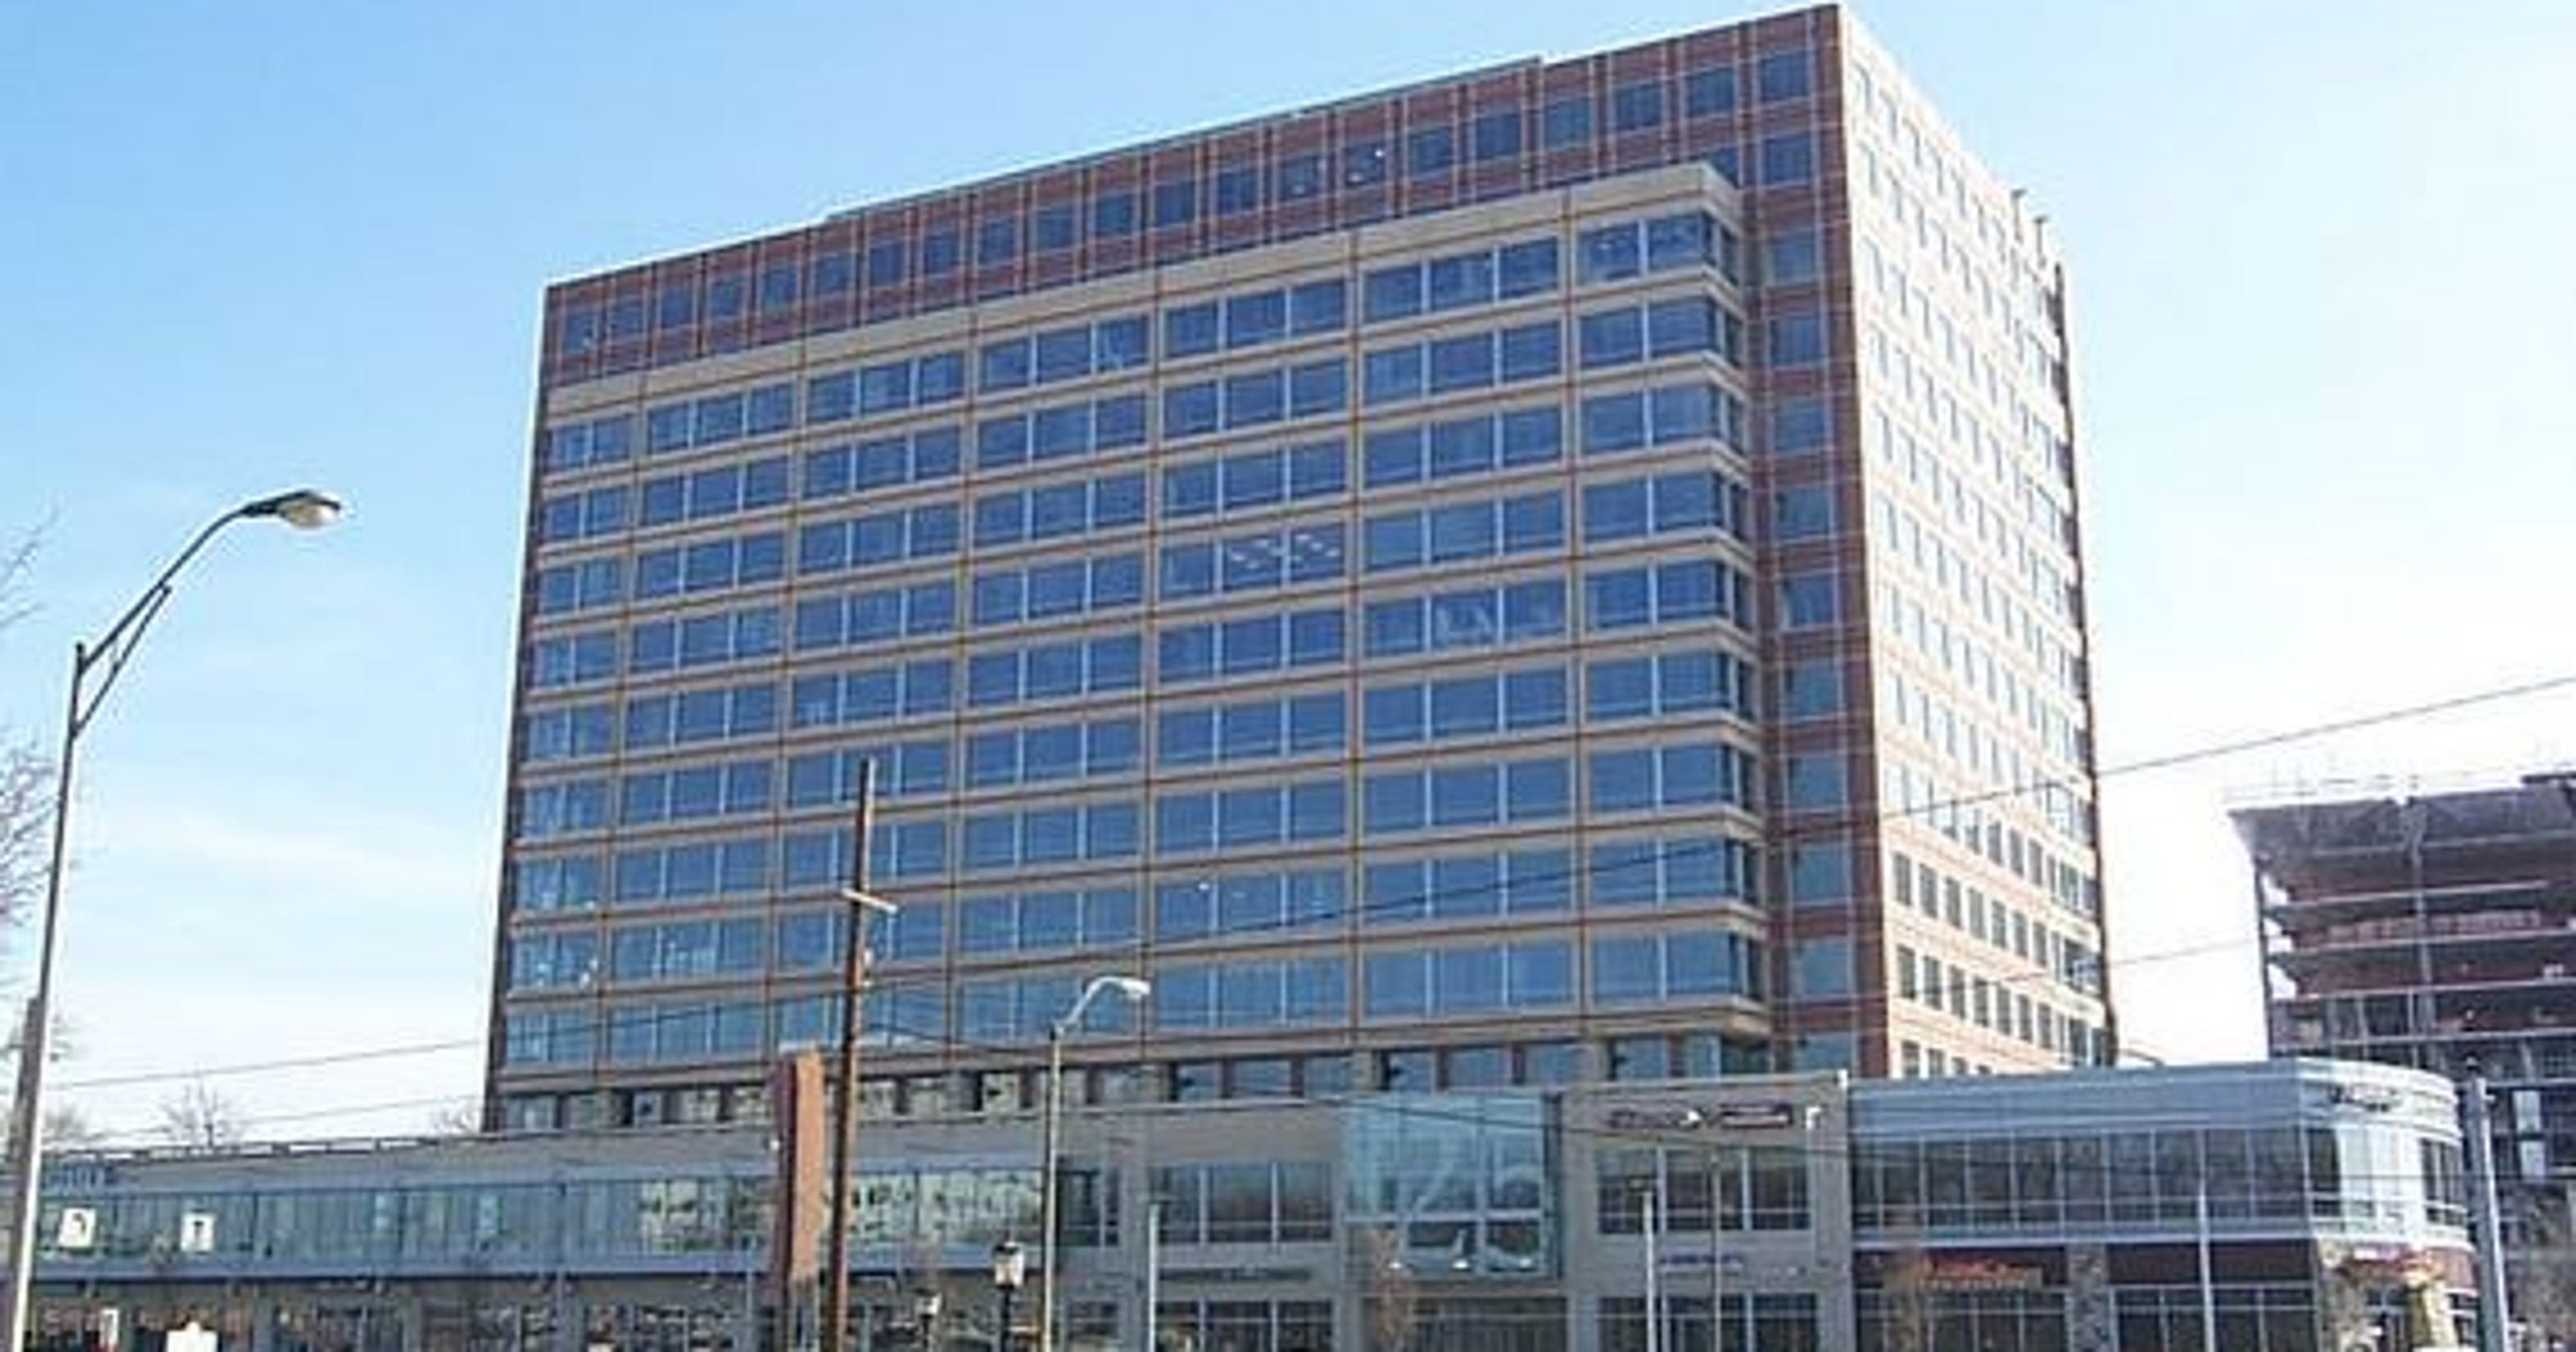 Investment Firm That Owns 2525 West End And The Carothers Building Being Sold